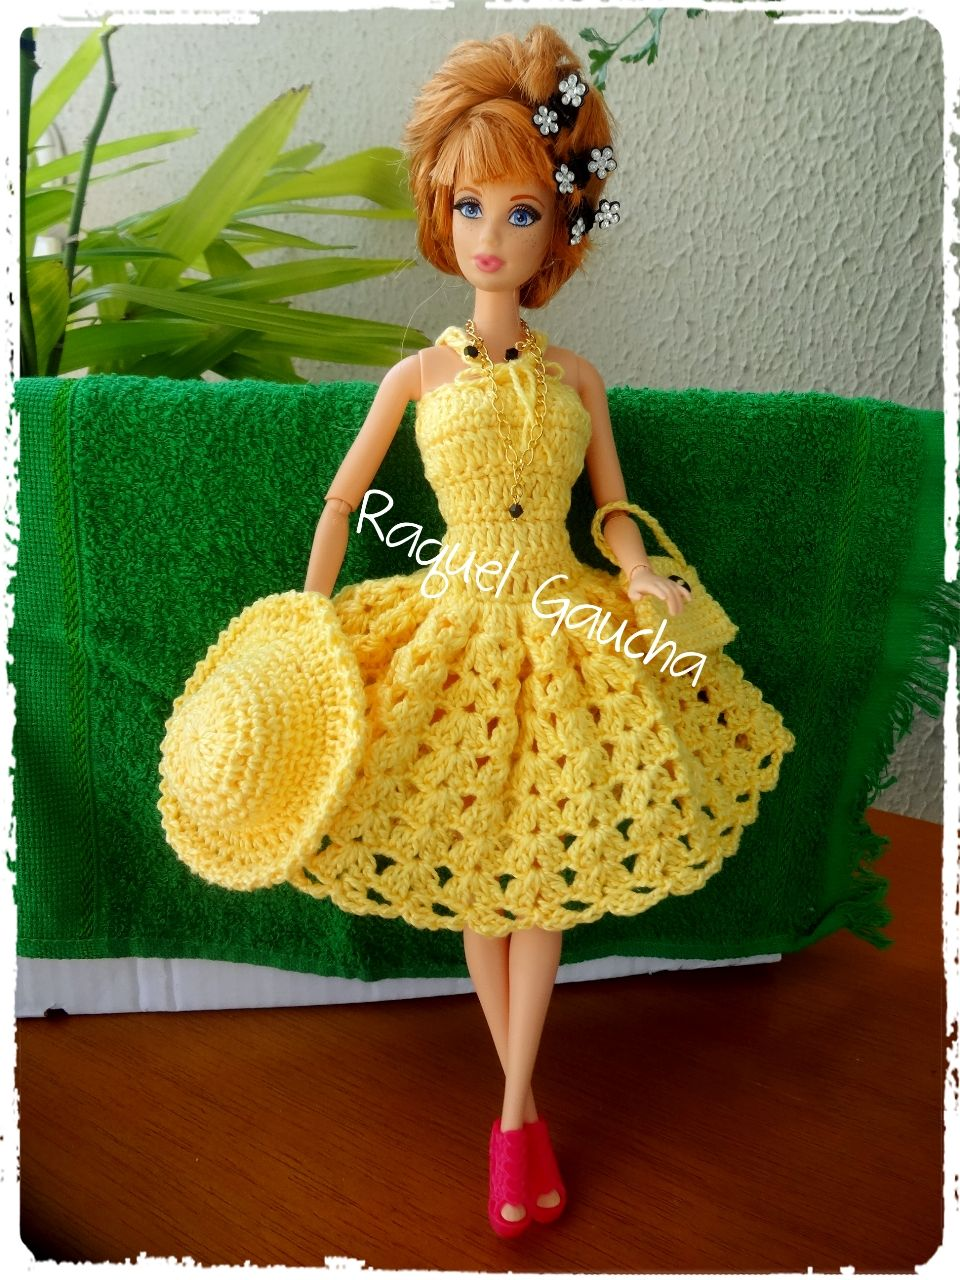 Anne, #Vestido #Dress #Hat #Purse #Bolsa #Chapéu #Sombrero #Doll ...